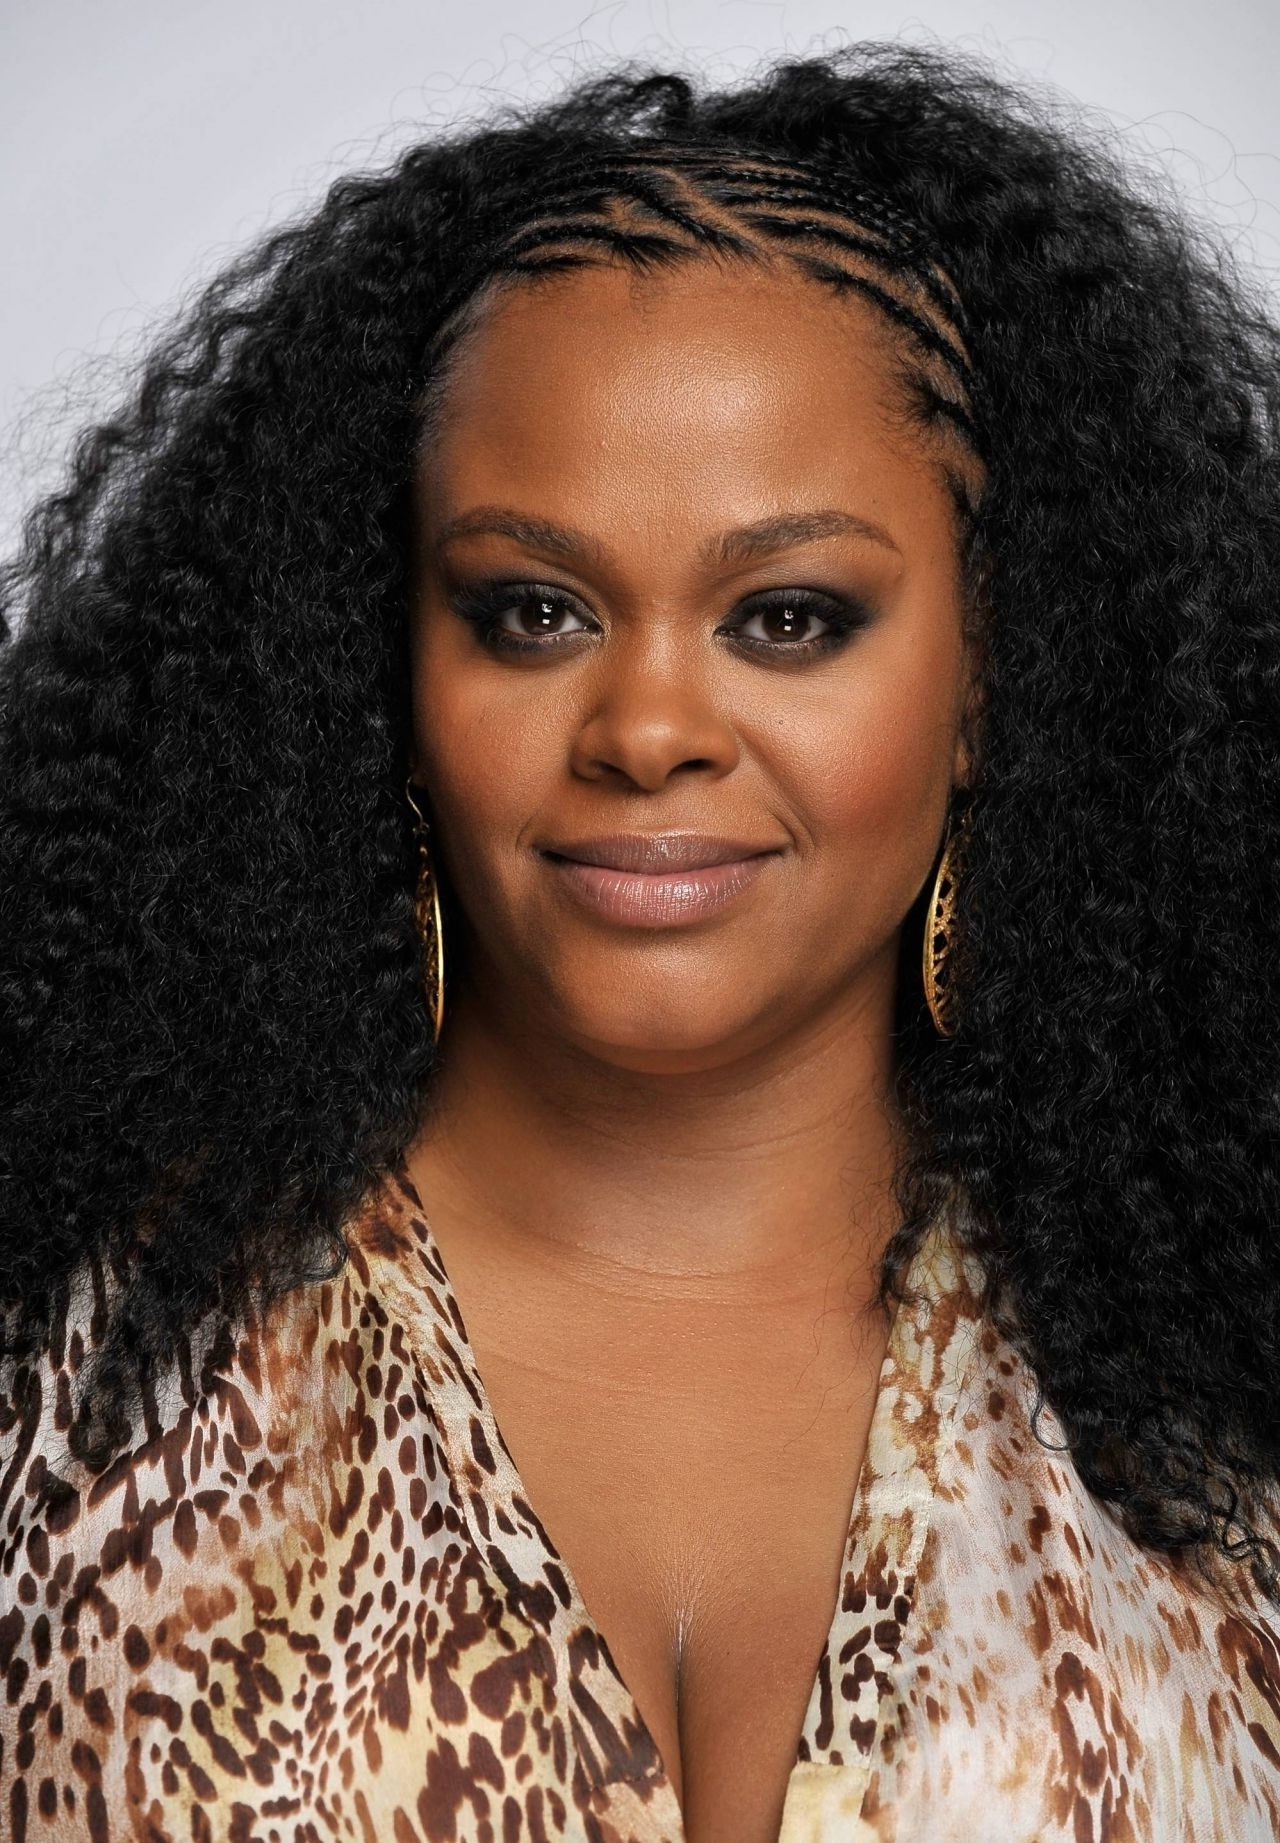 French Braids Hairstyles For African American African American Within Most Recent African American Braided Hairstyles (View 13 of 15)